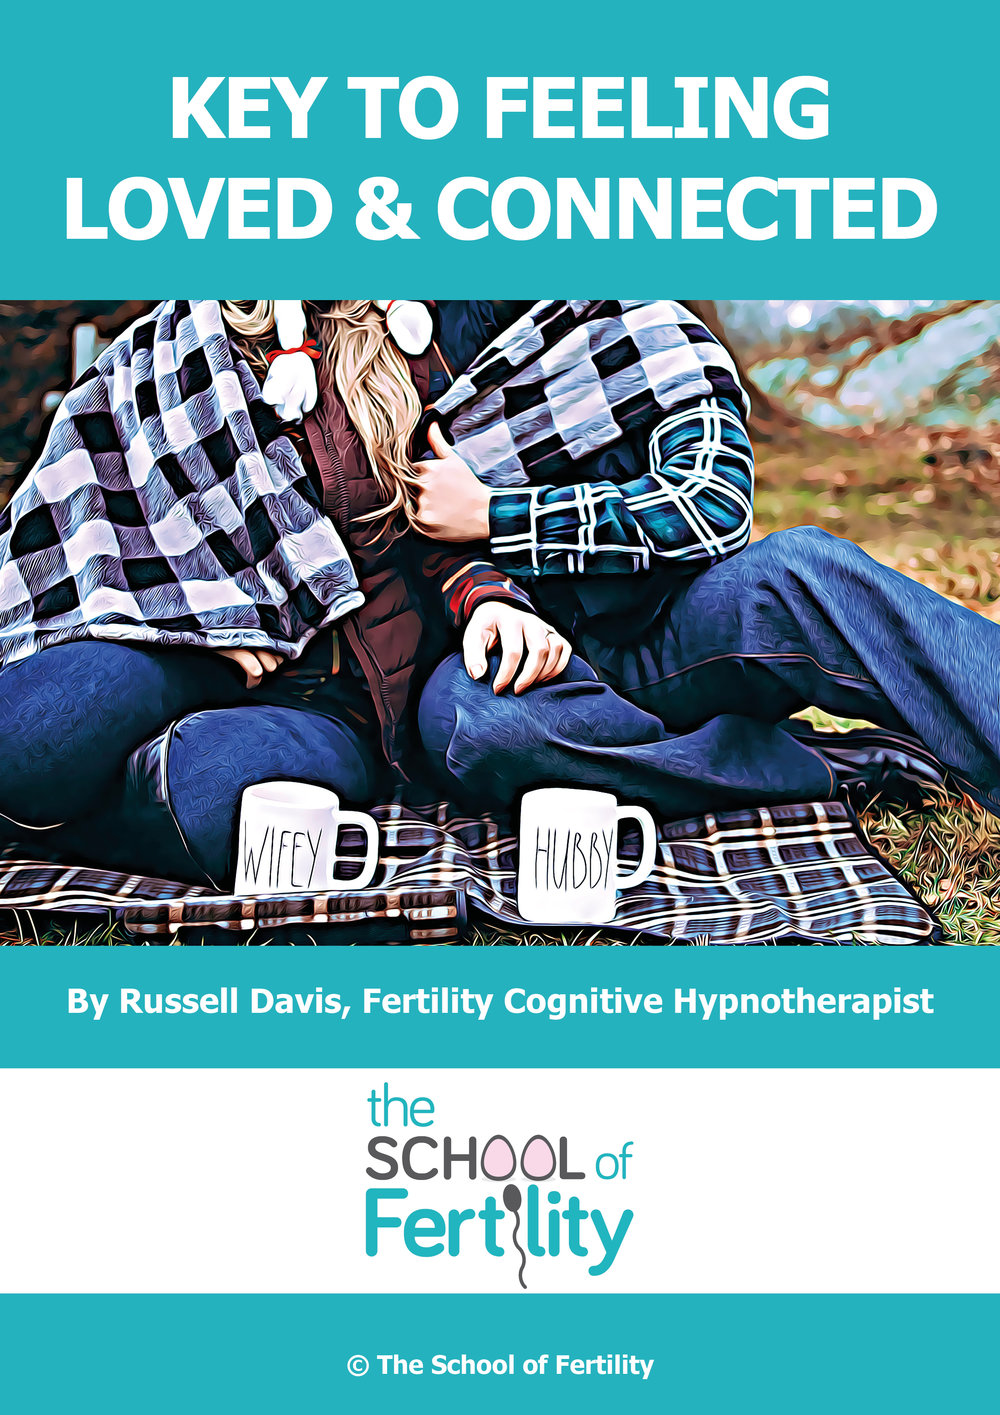 Key to feeling loved and connected (c) The School of Fertility.jpg